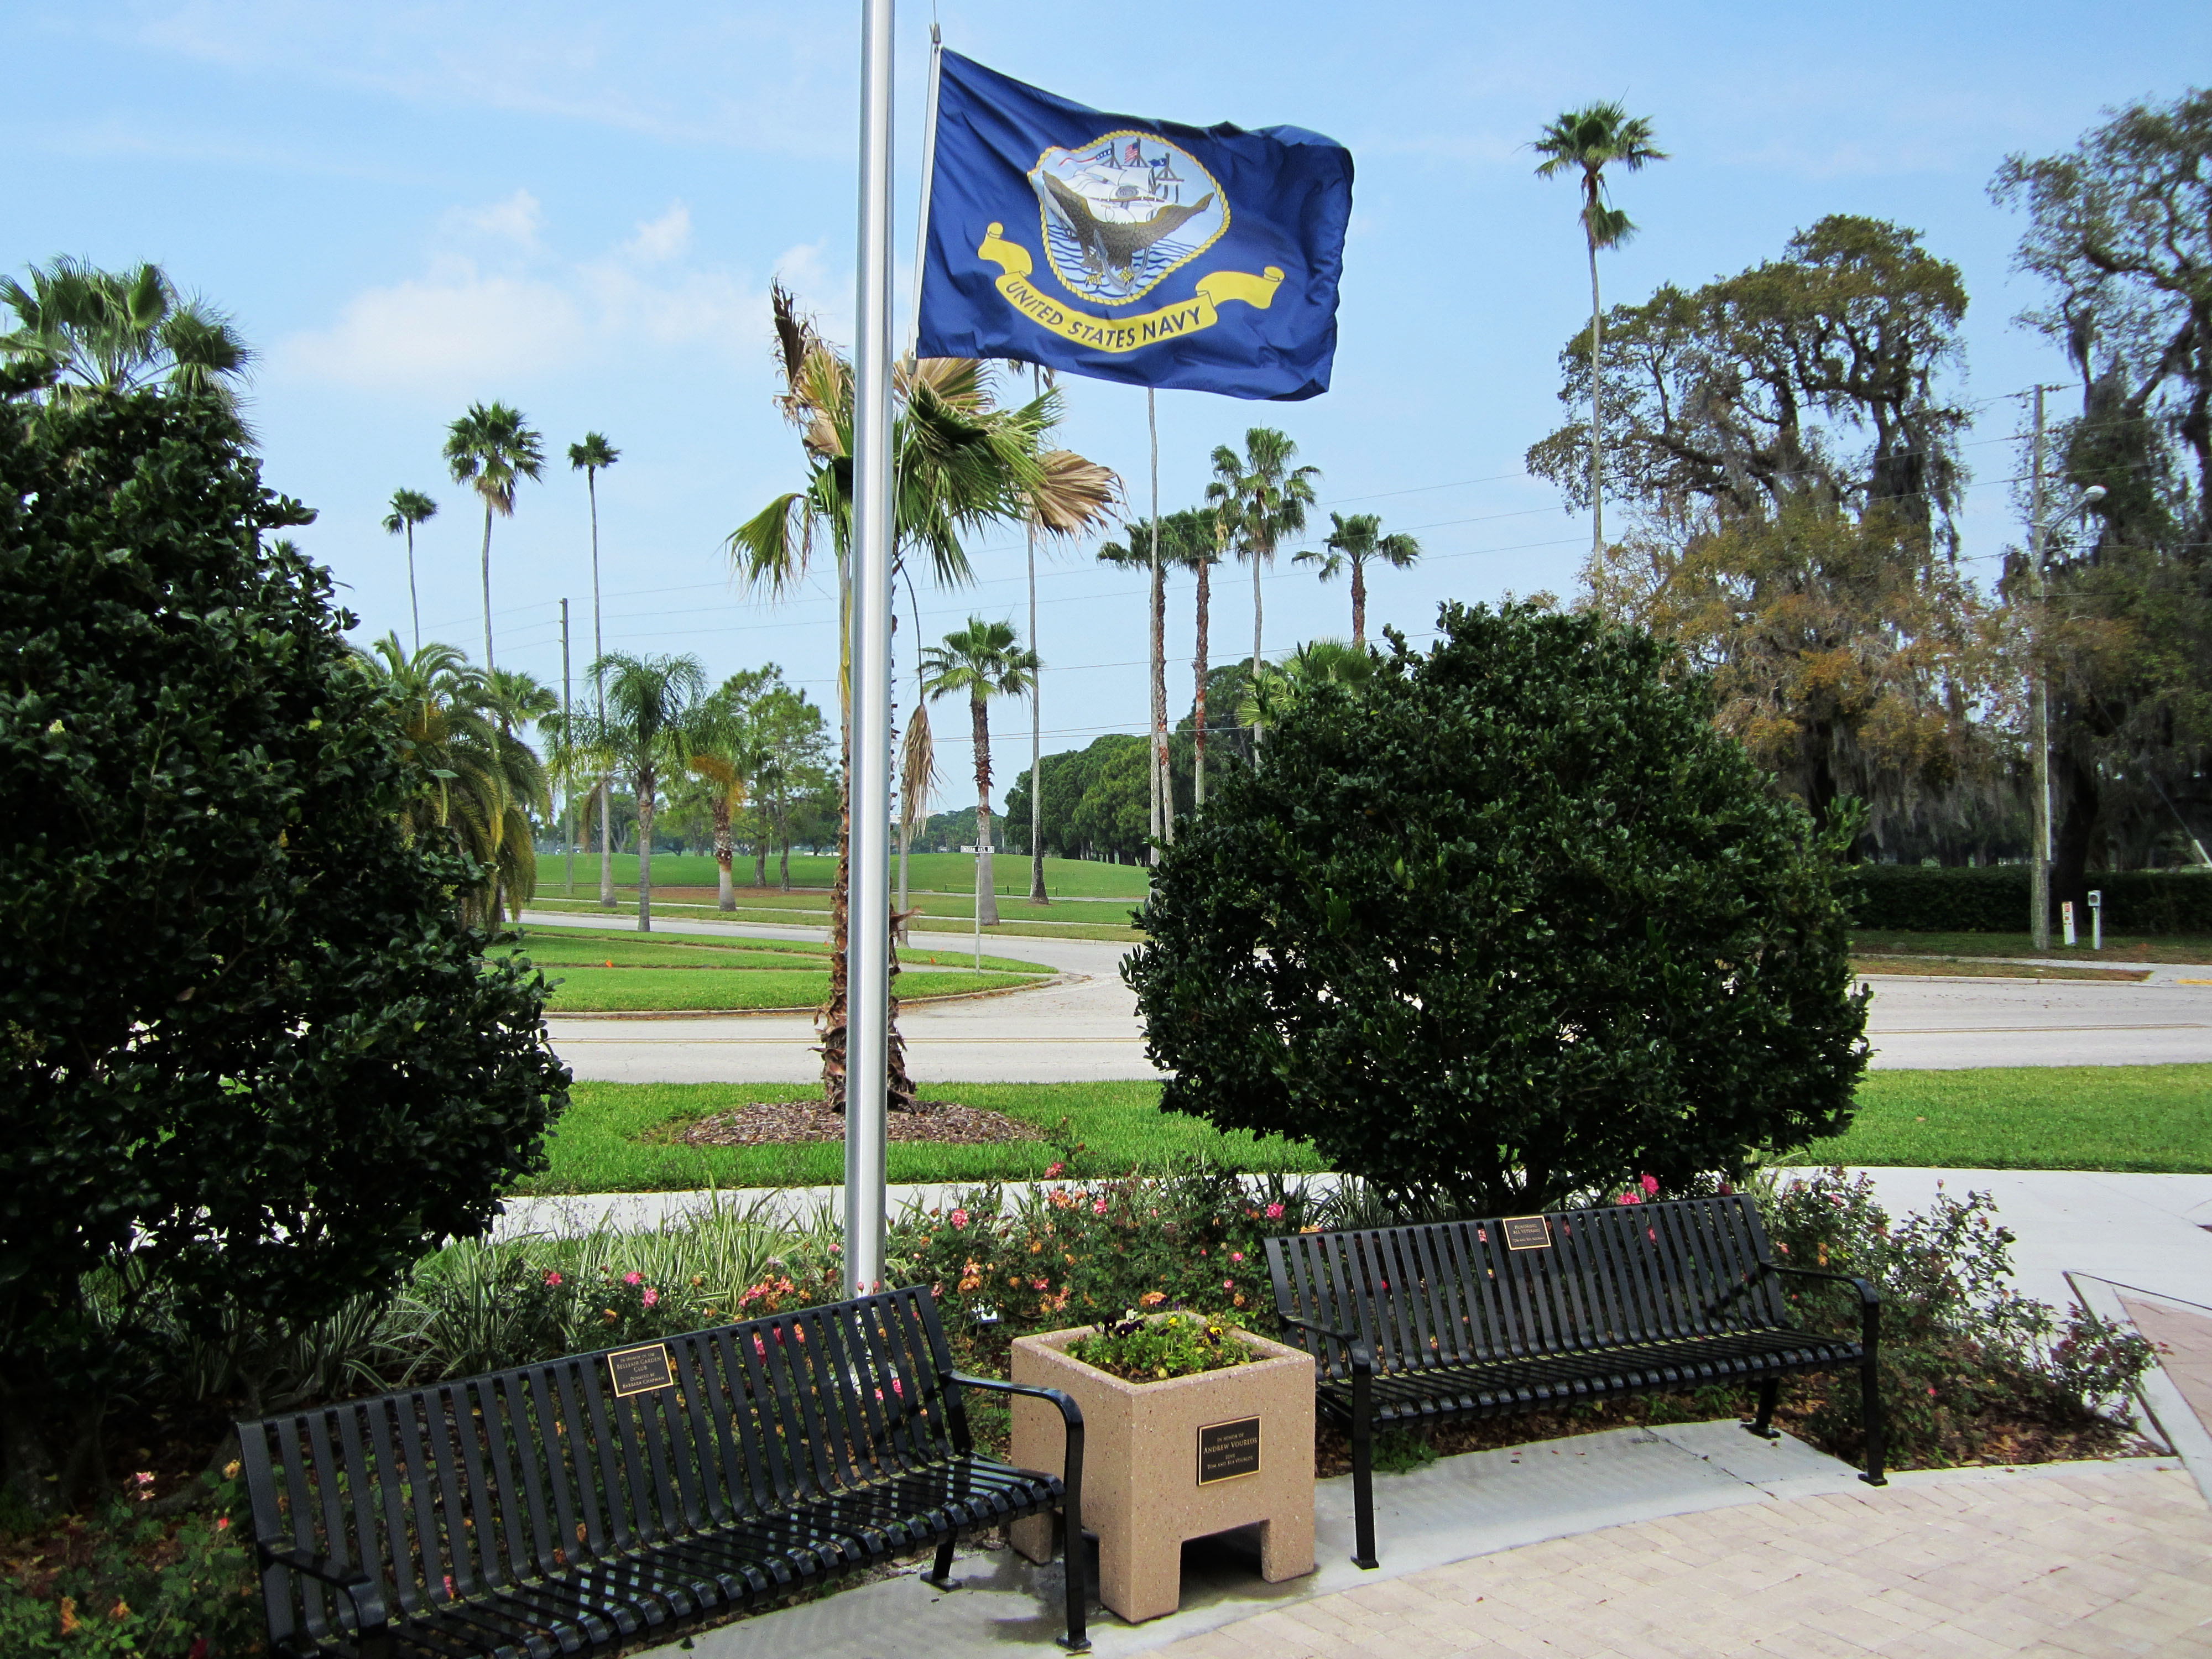 A flag for the United States Navy flies a half staff next to two benches in Hunter Memorial Park